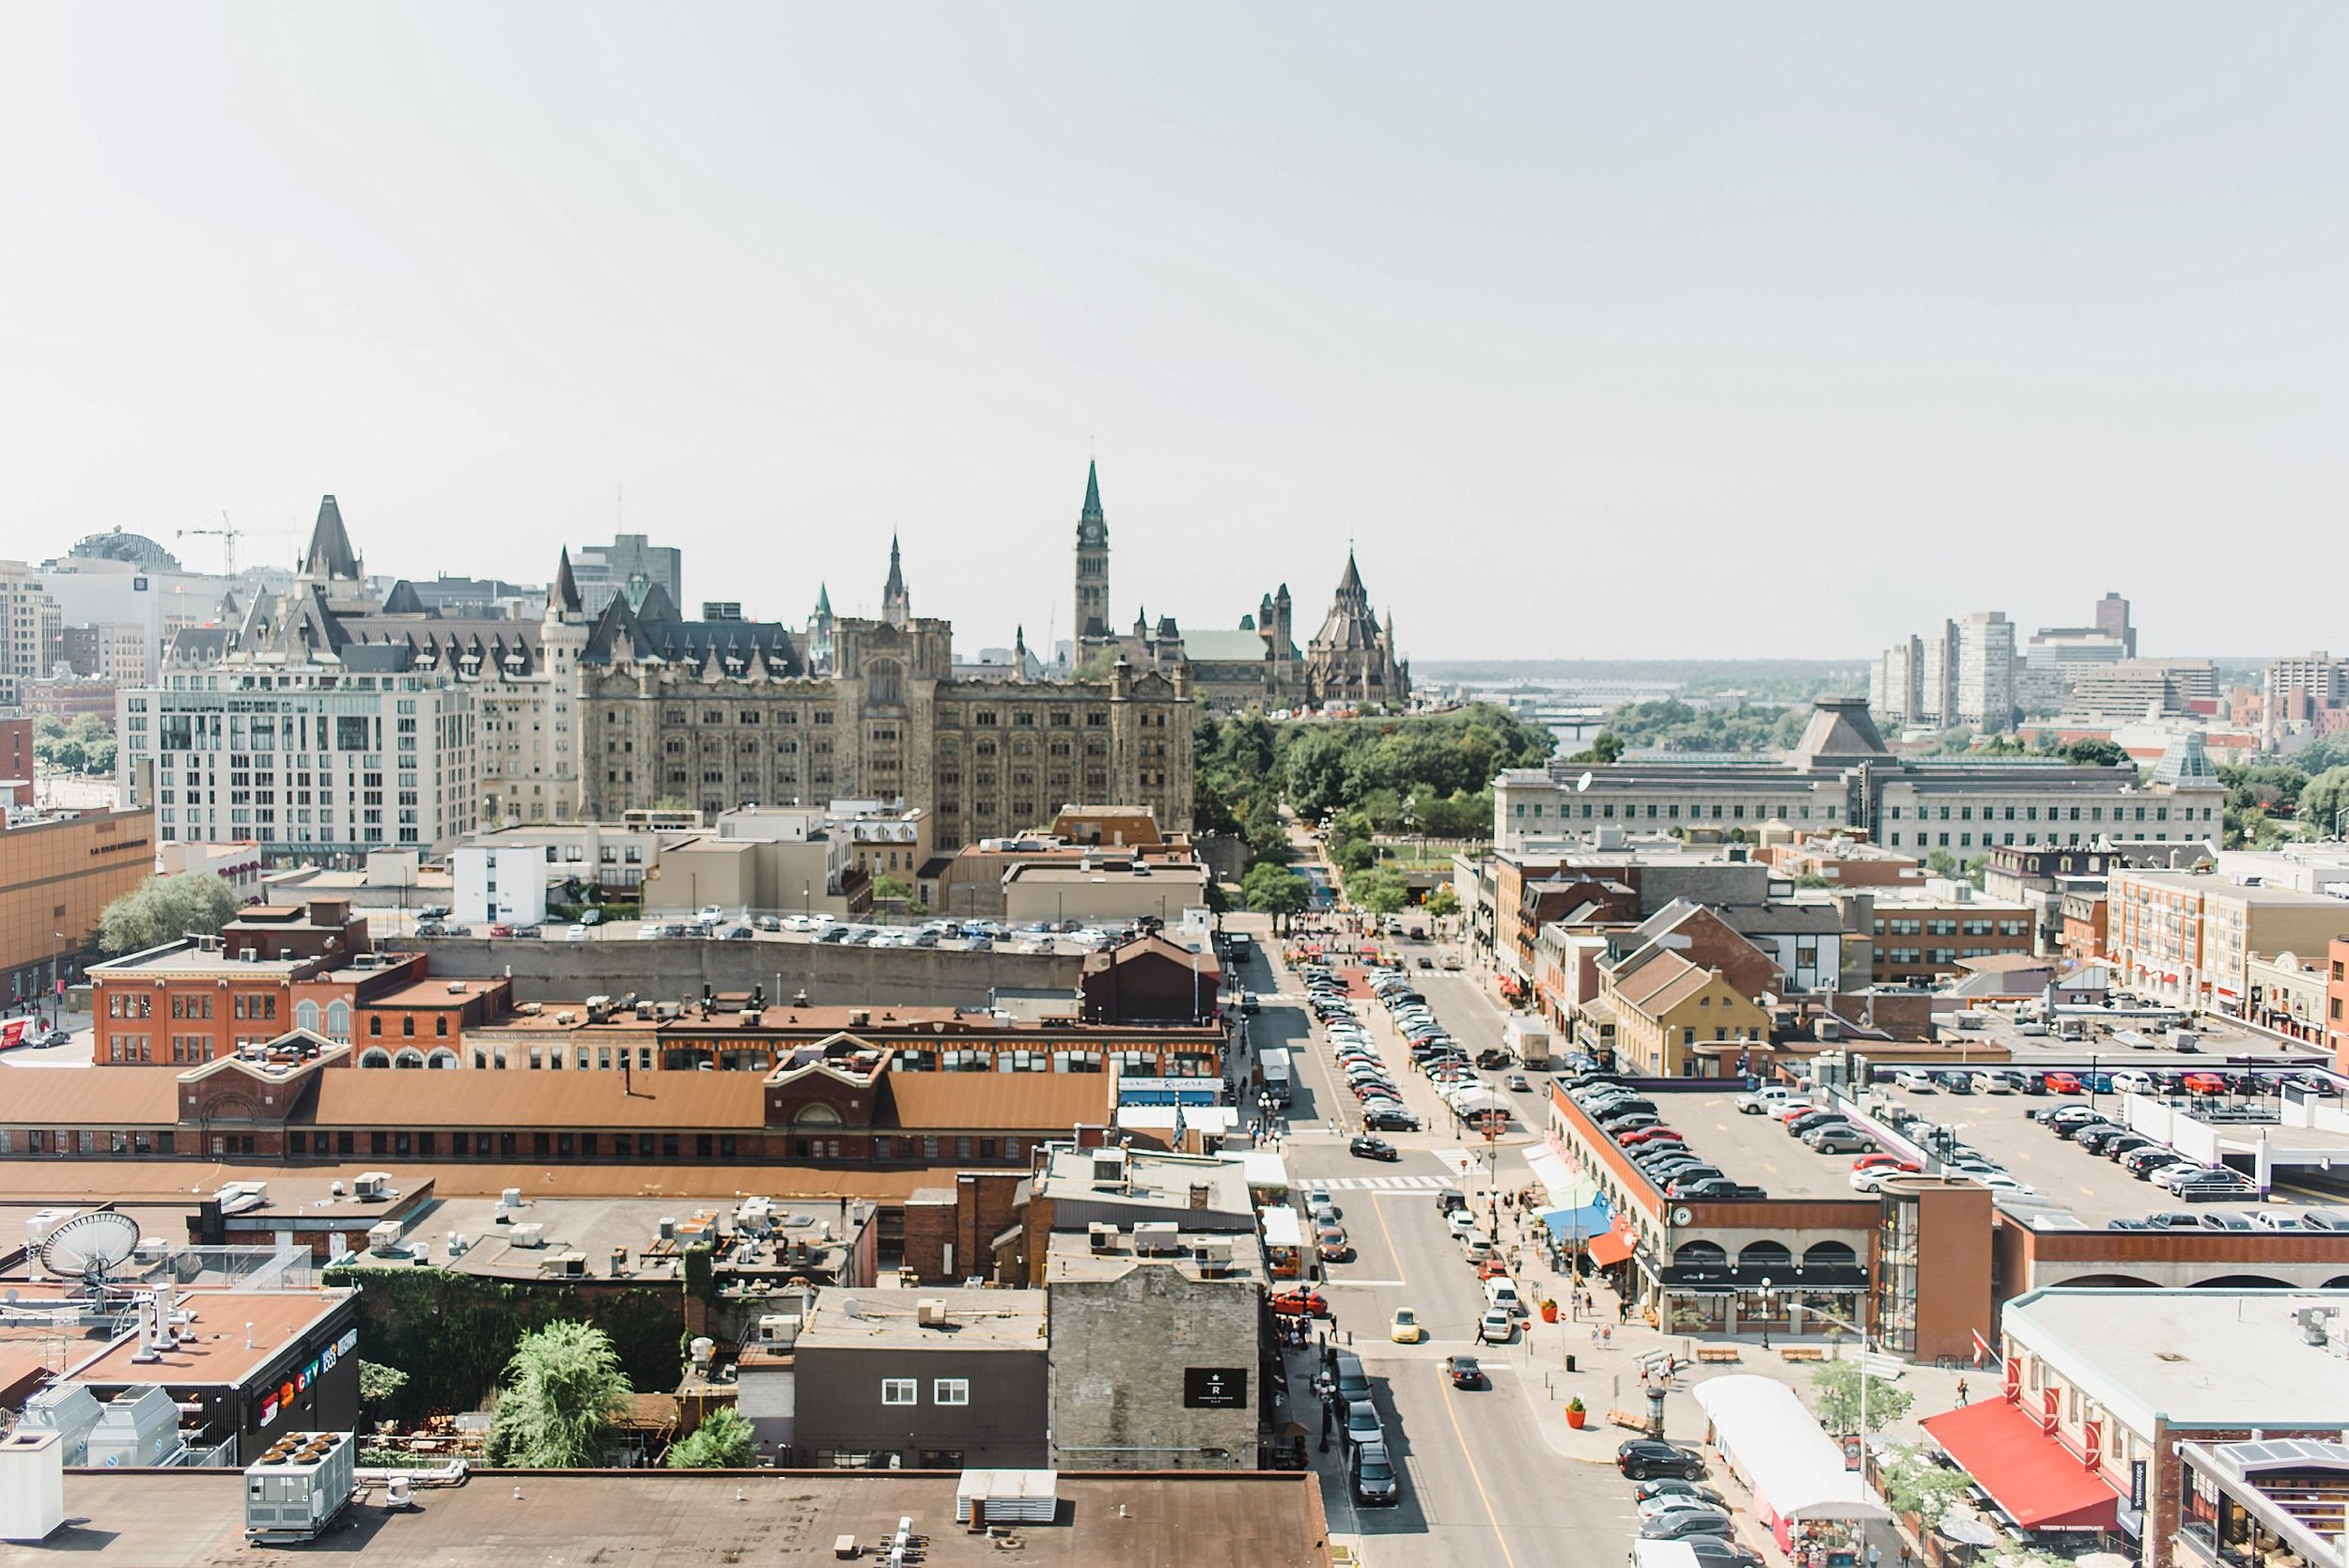 The view from the Andaz Ottawa Byward Market hotel is unbeatable!  Every wedding that takes place downtown should start right here.